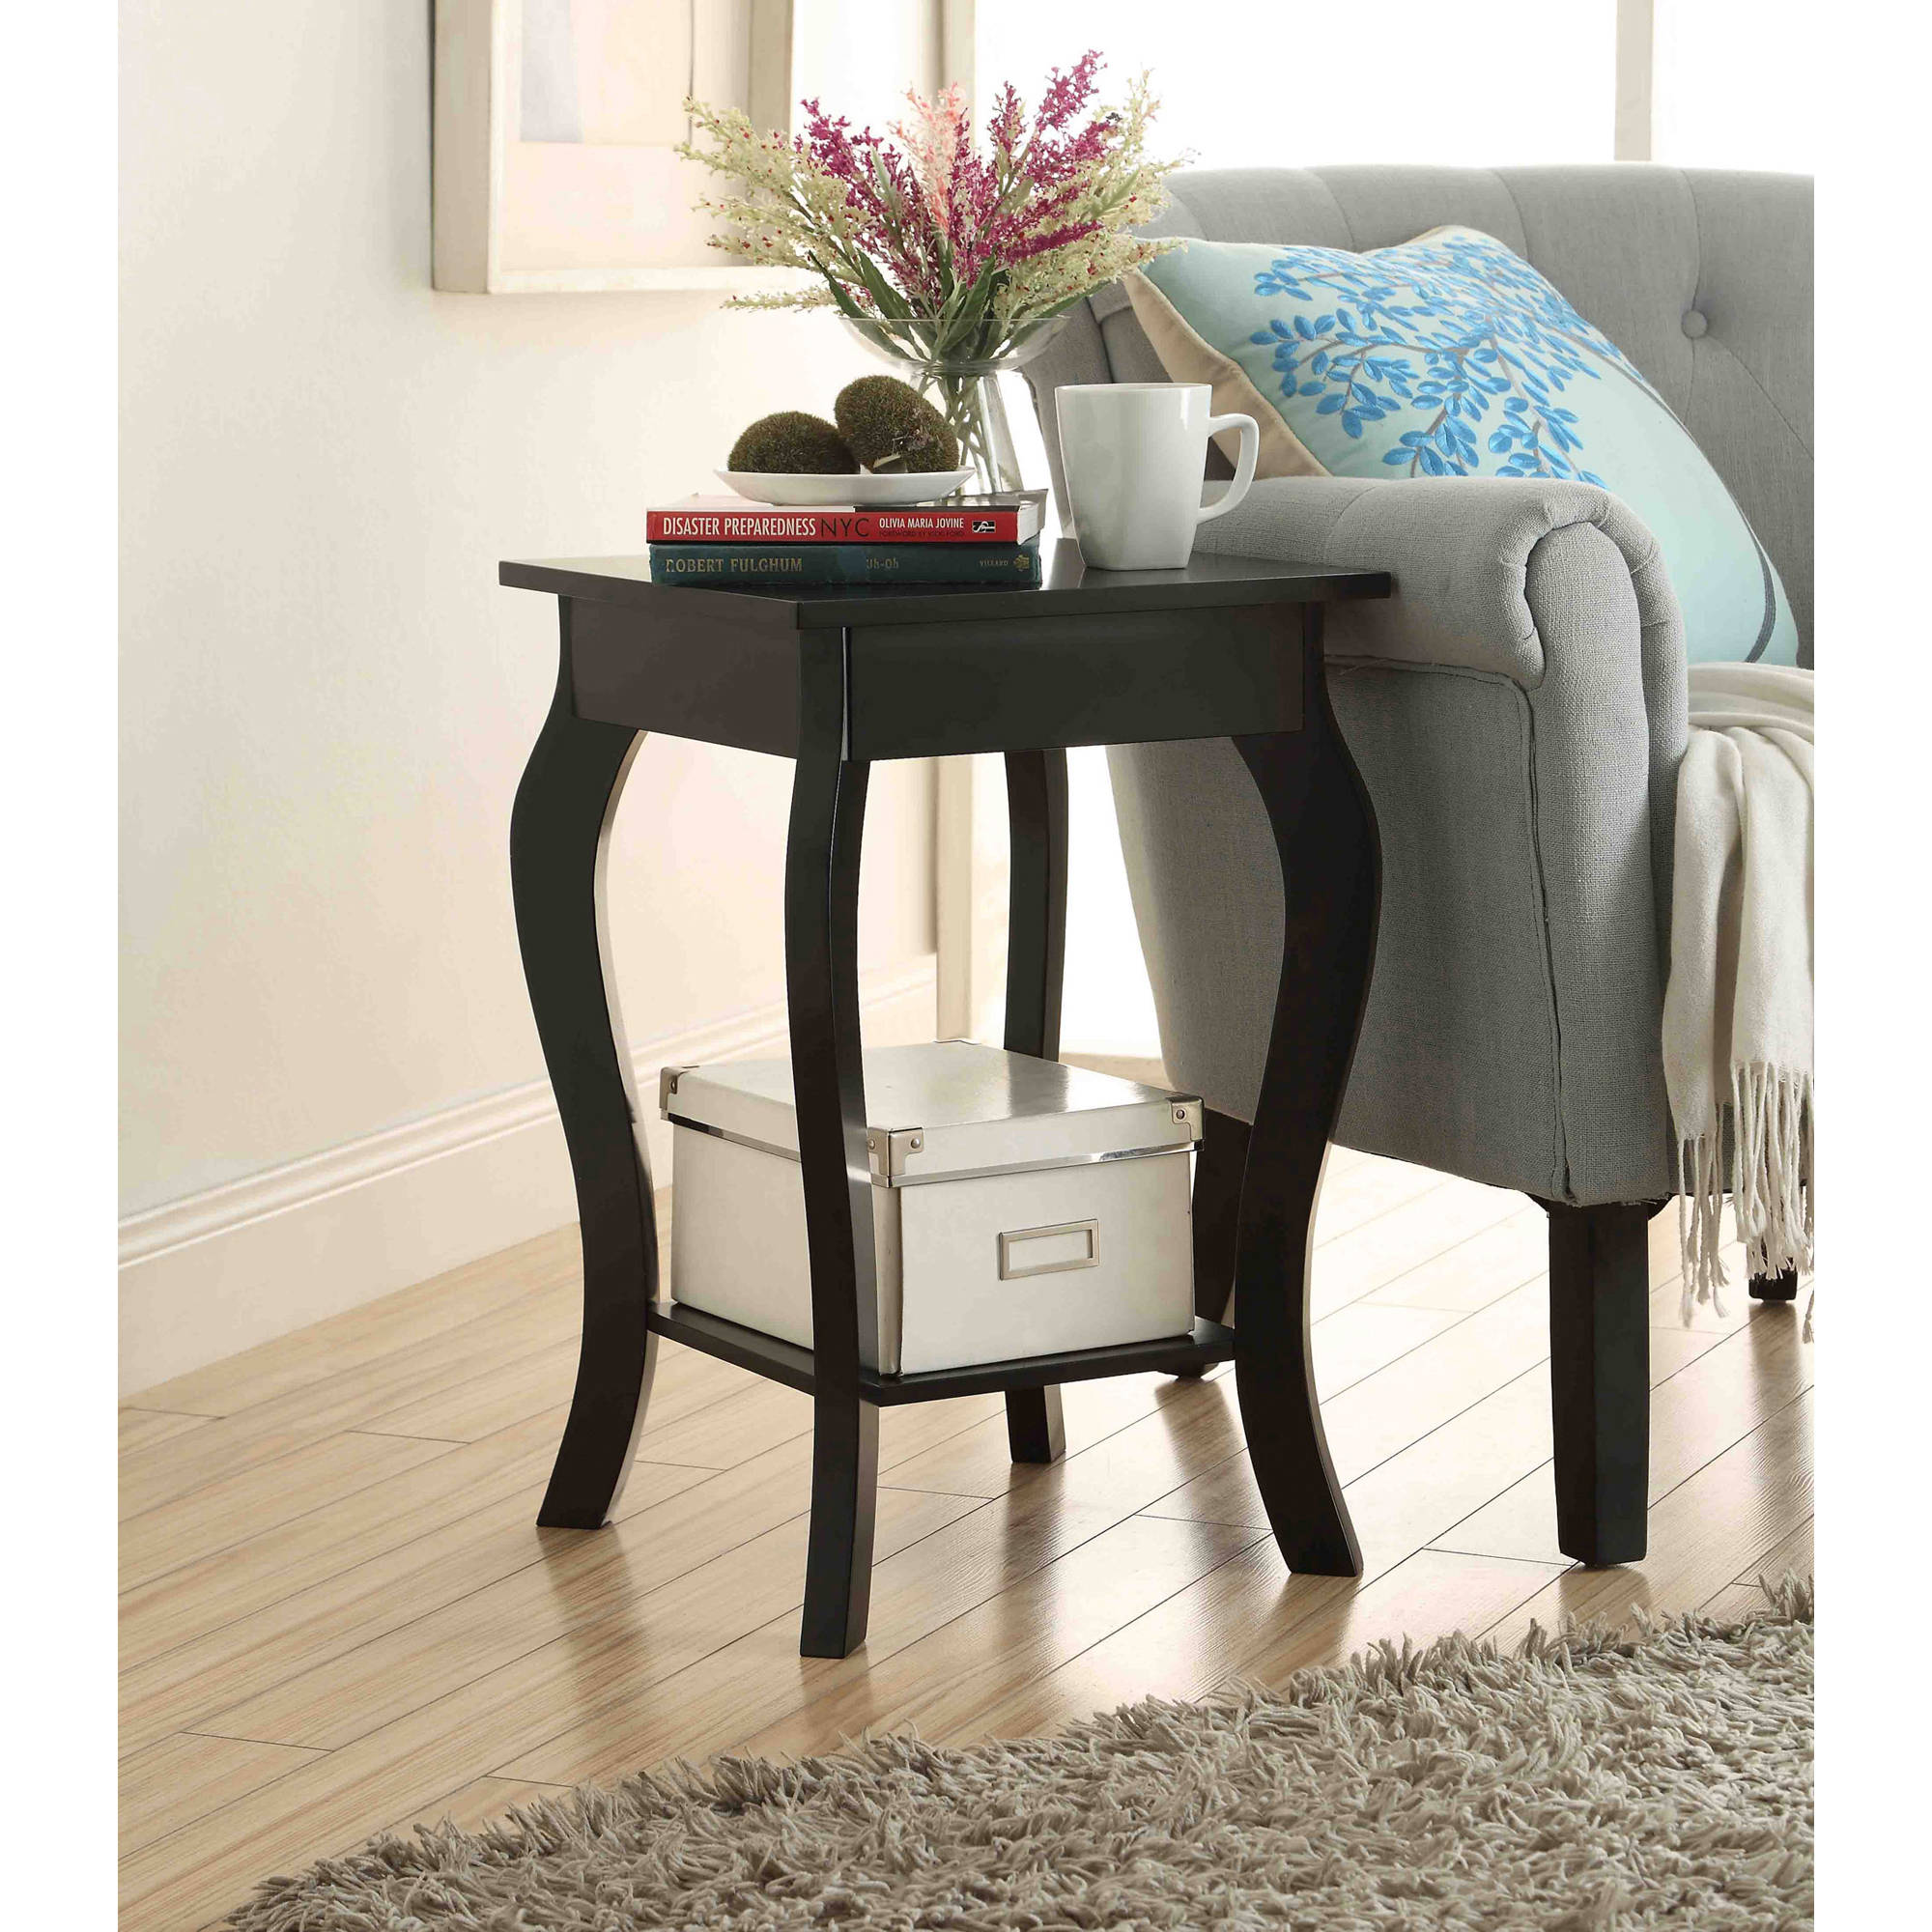 invalid category dining room accent table unusual light shades western furniture copper top outdoor drink unique cool coffee designs winter runner ashley chairs square patio